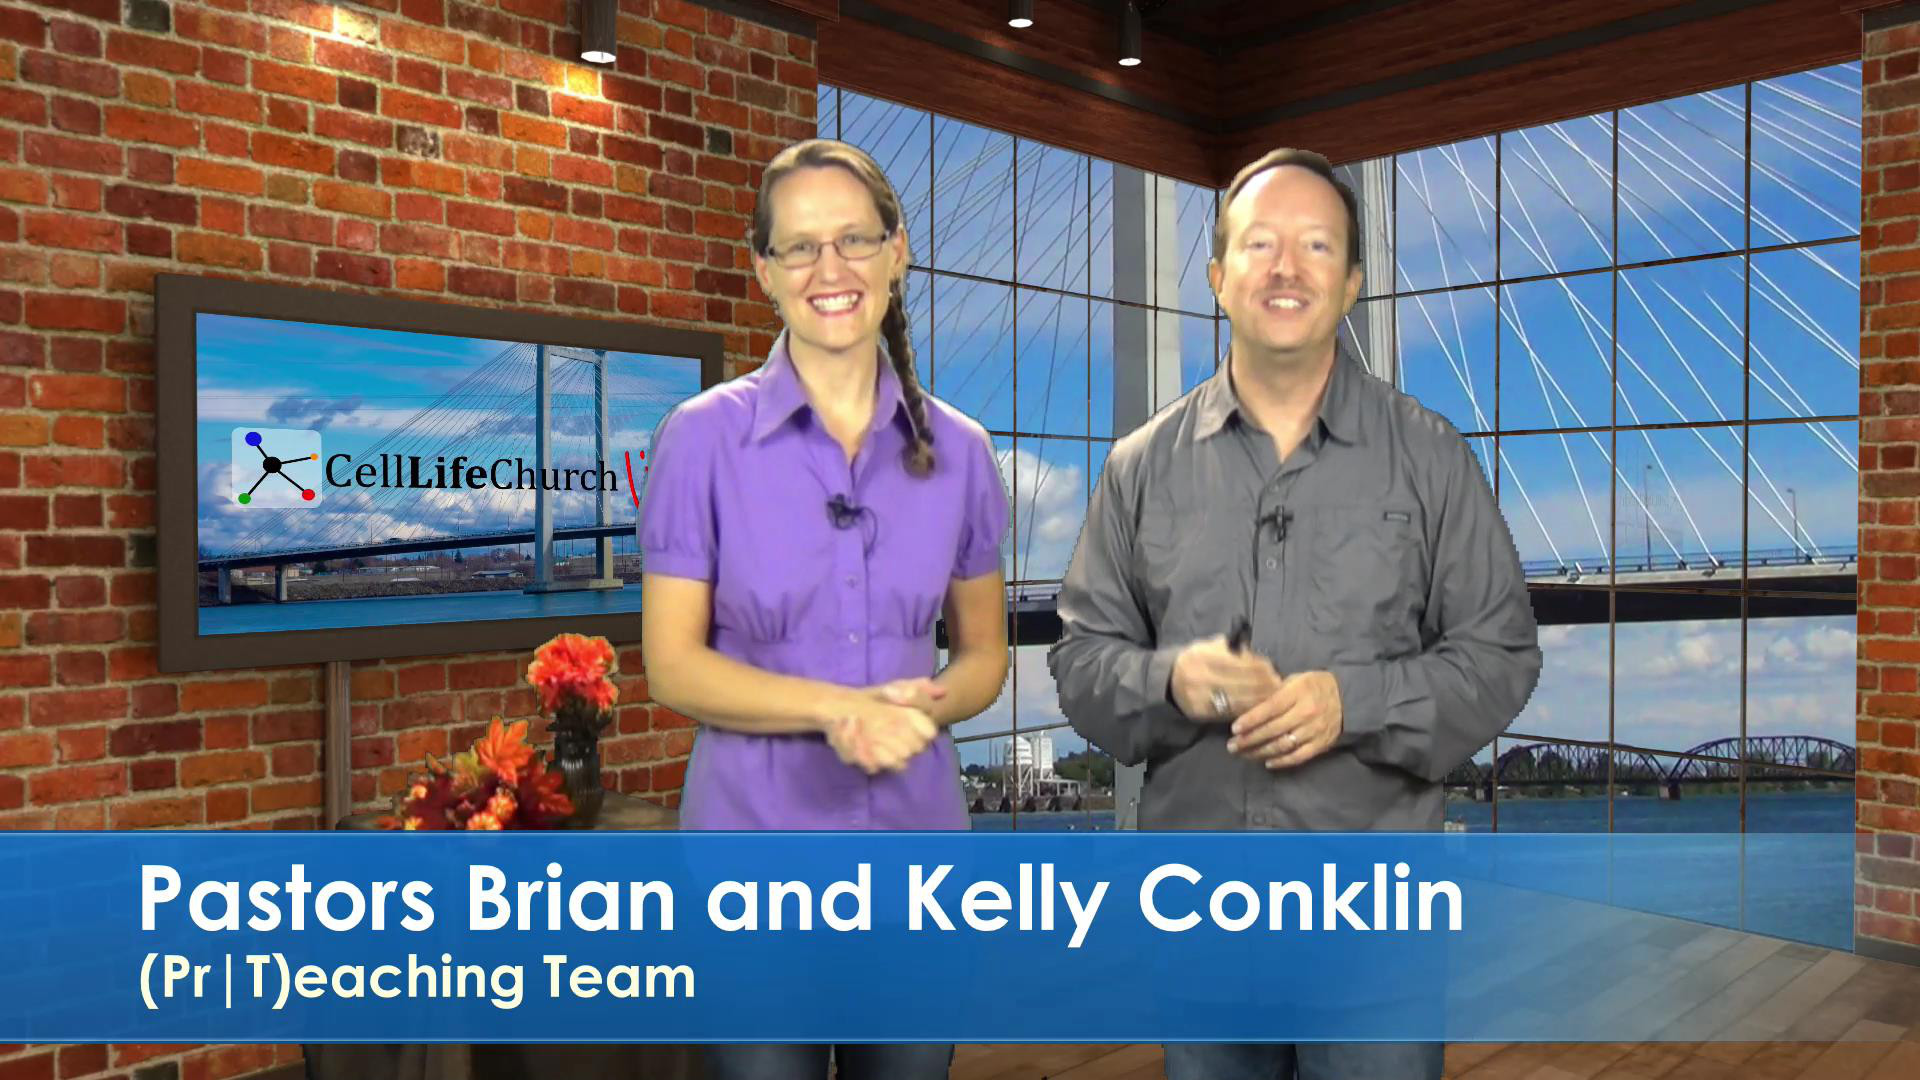 Pastors Brian and Kelly Conklin